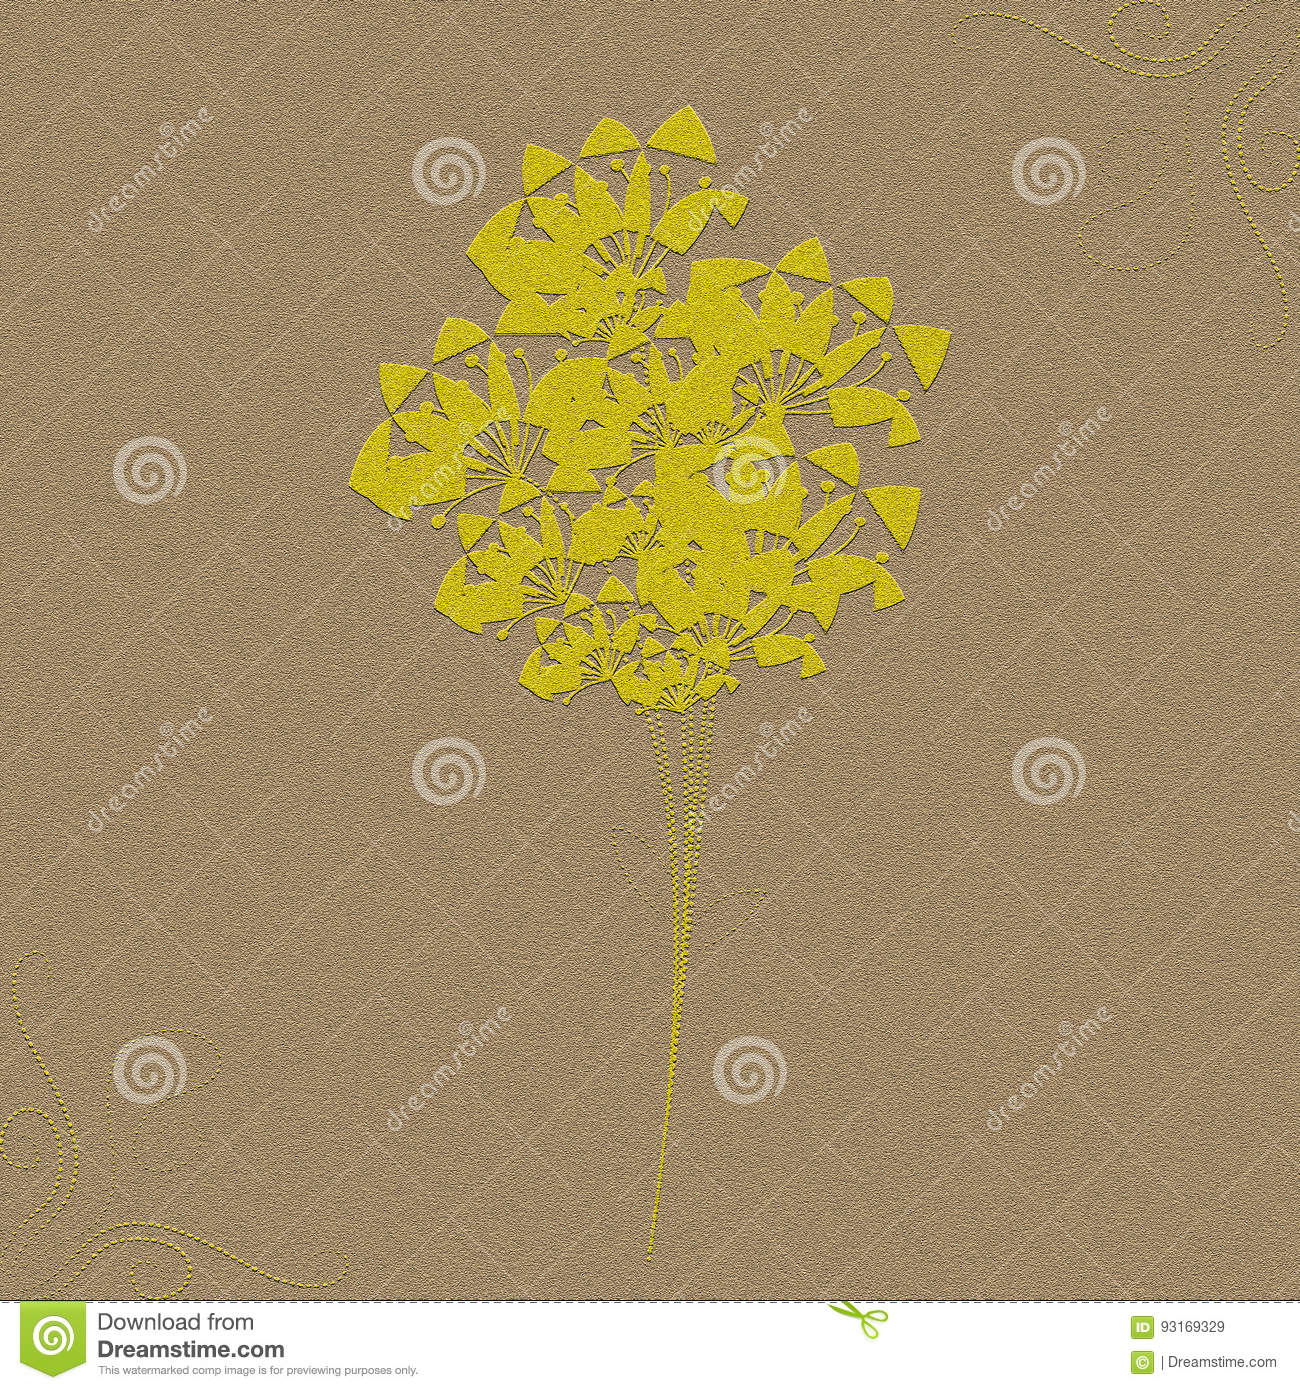 Flowers Notepaper Texture Effect Yellow Brown Illustration